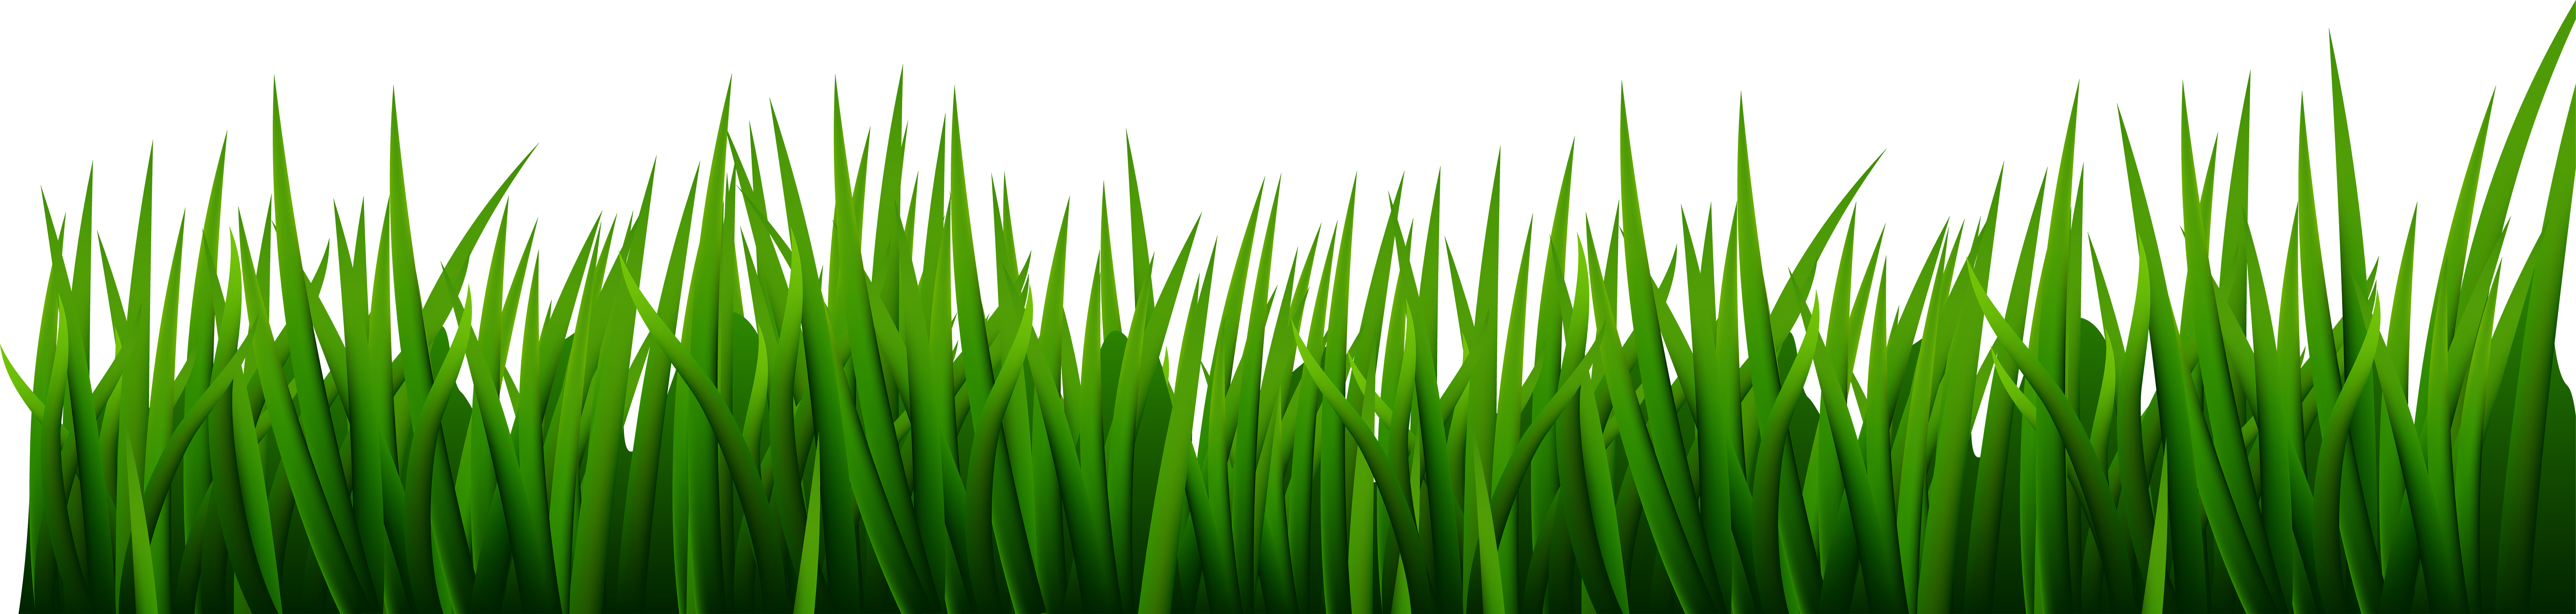 Grass clipart png format. Clip art image gallery